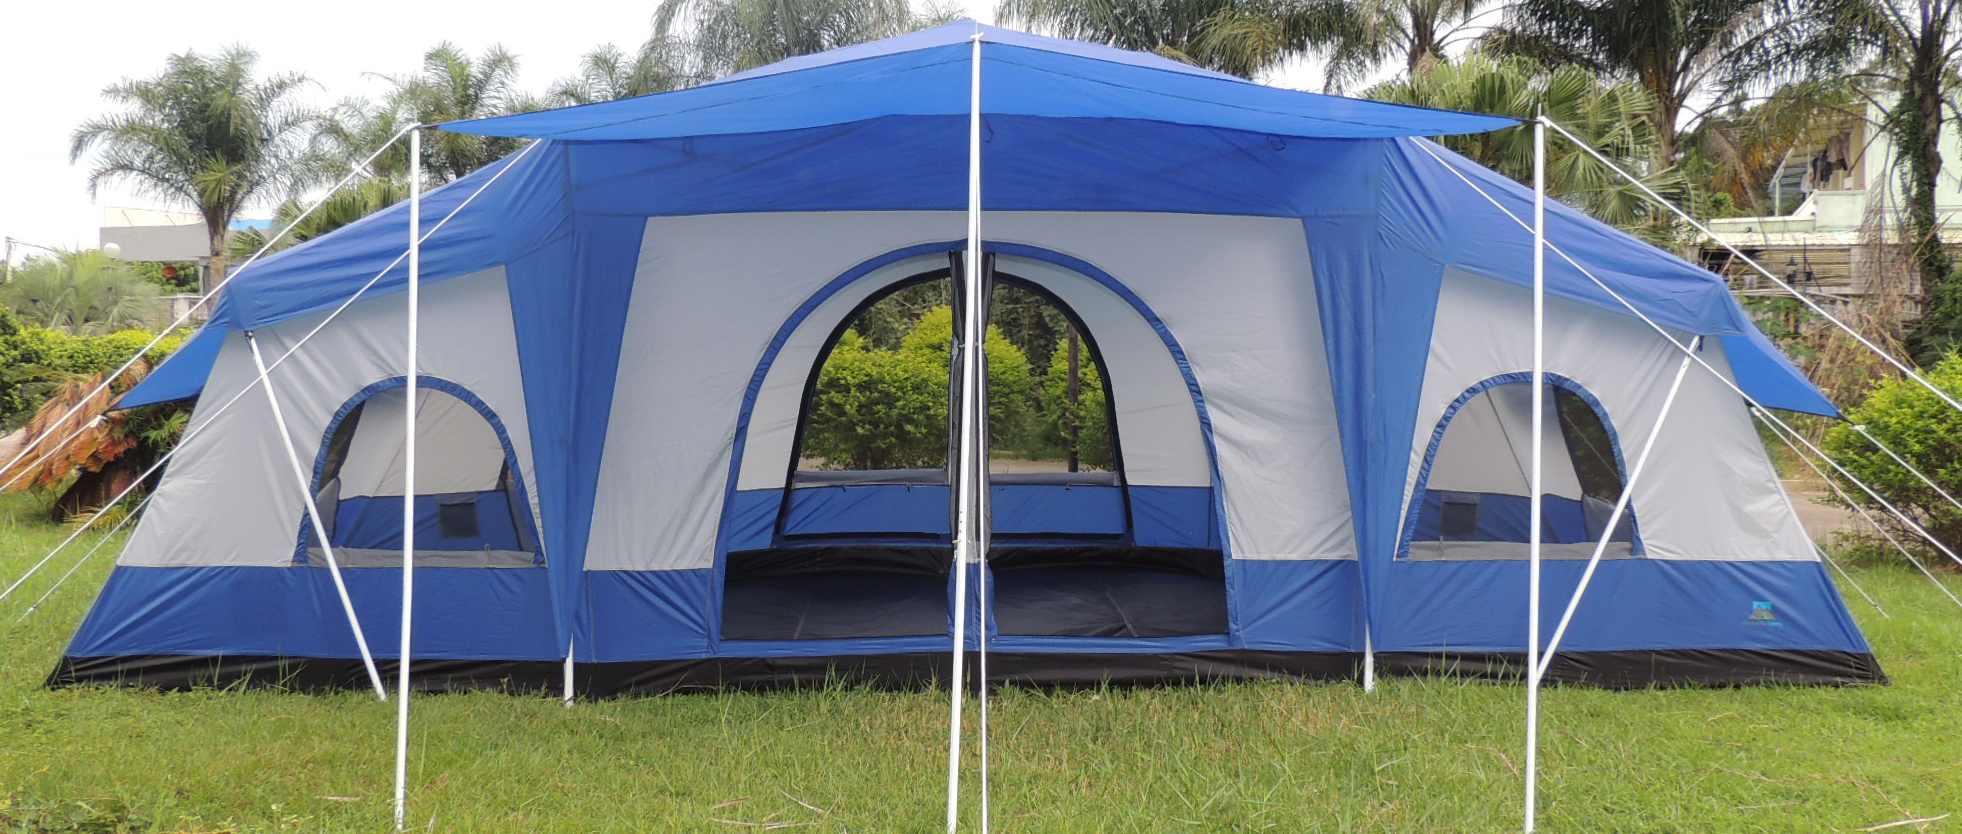 Cabin-Tent-Deluxe-Four-Room-Front-View ... : big tents cheap - memphite.com